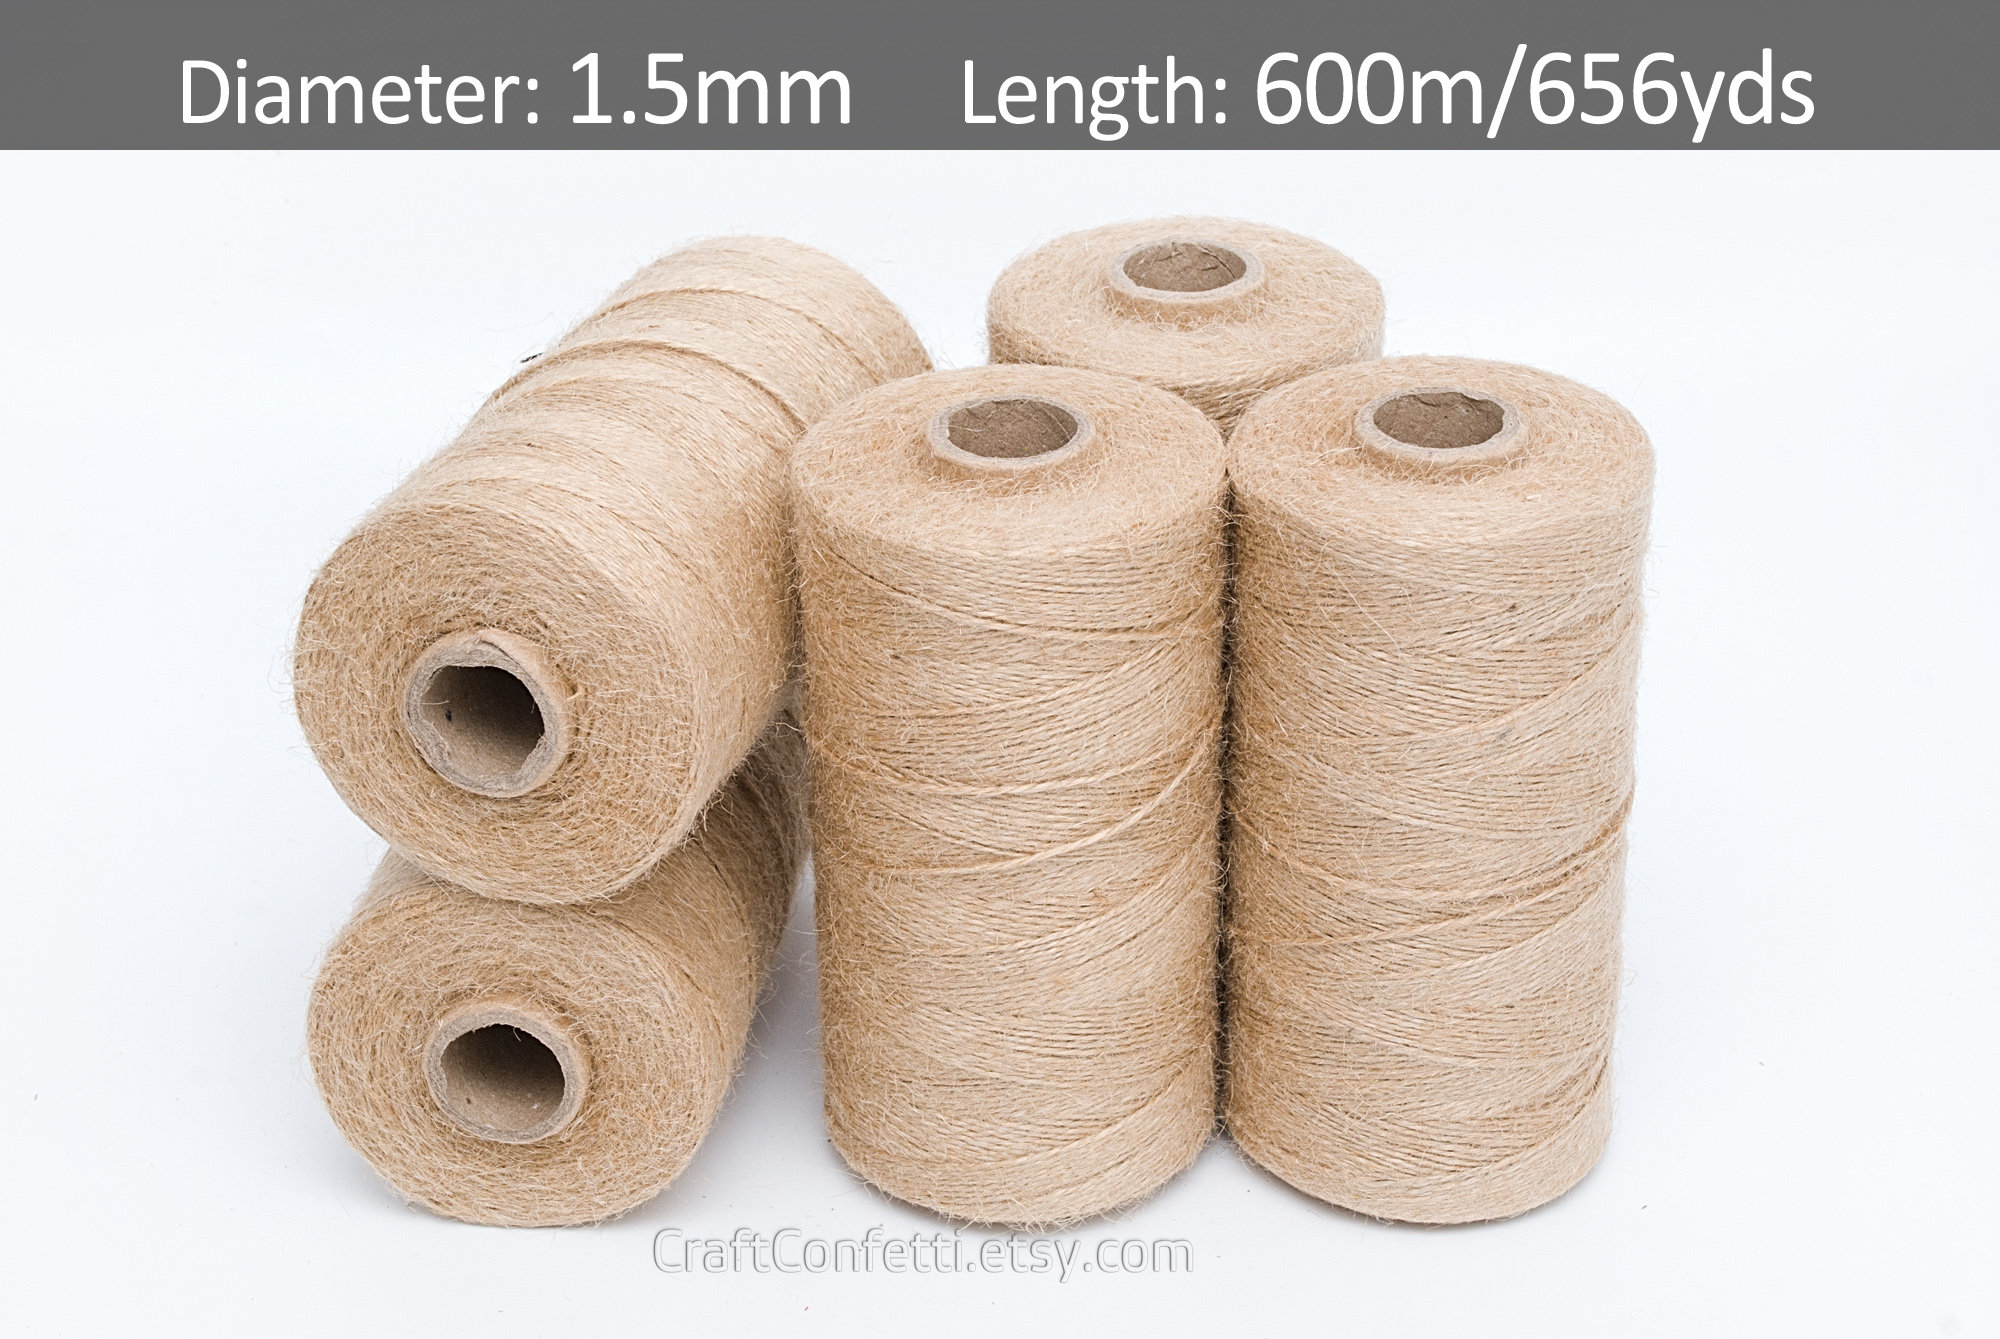 Jute cord 1 5mm Craft twine Twisted jute string Plain twine Gift wrap Tag  string Rustic rope Burlap cord Gardening cord / 600m (656 yards)